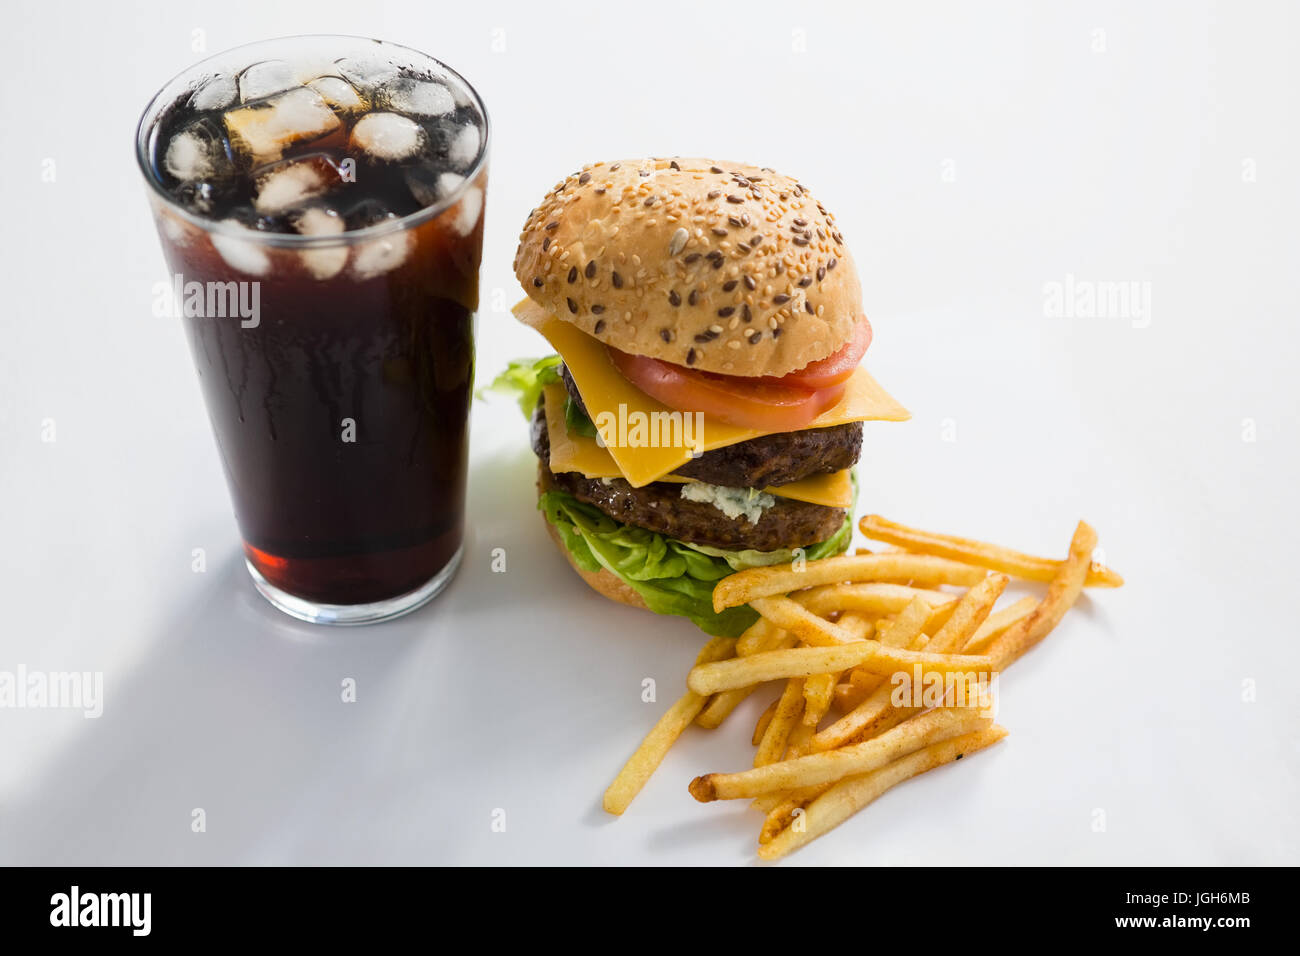 Cheeseburger and drink with French fries on white background - Stock Image